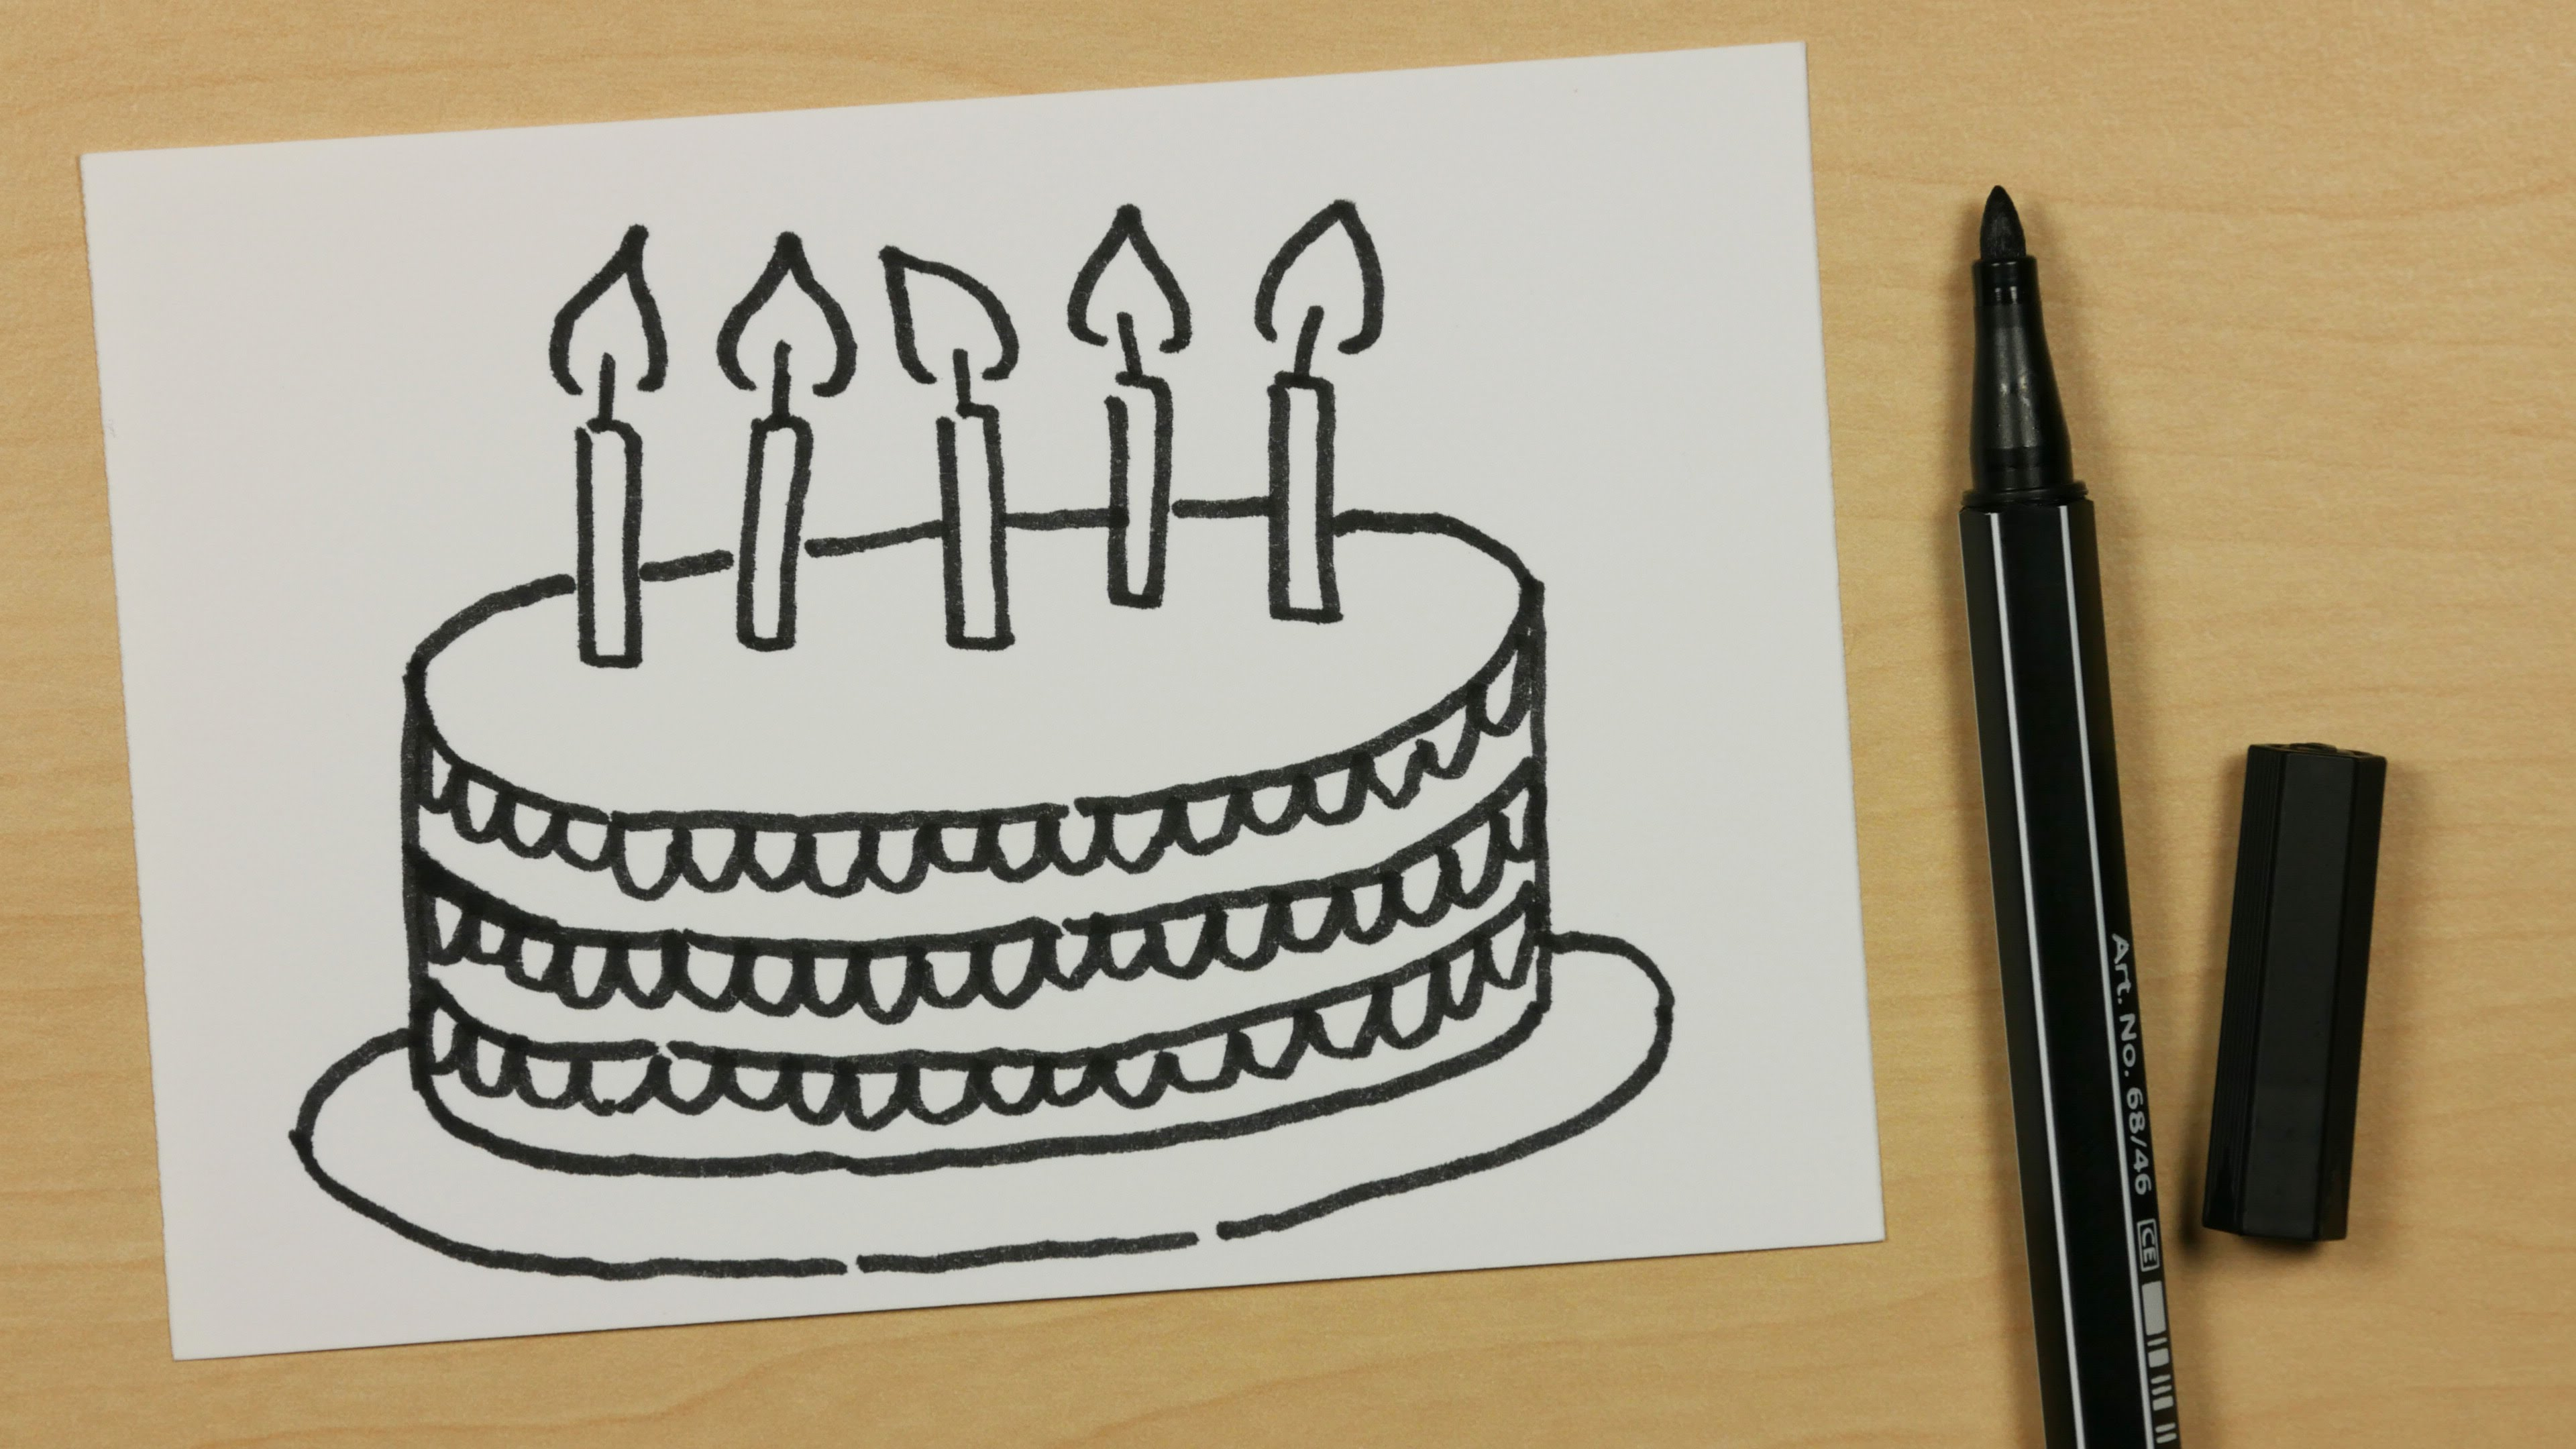 Happy Birthday Cake Drawing at GetDrawings